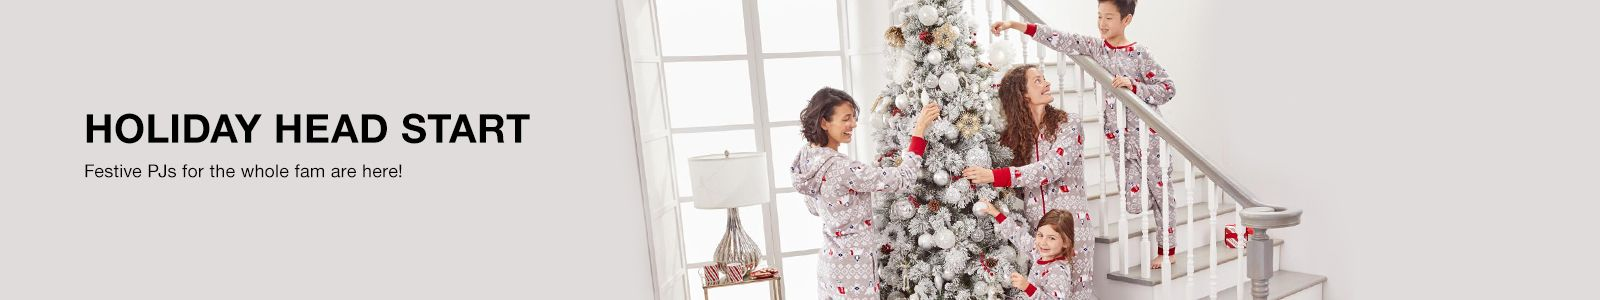 Holiday Head Start, Festive PJs for the Whole fam are here